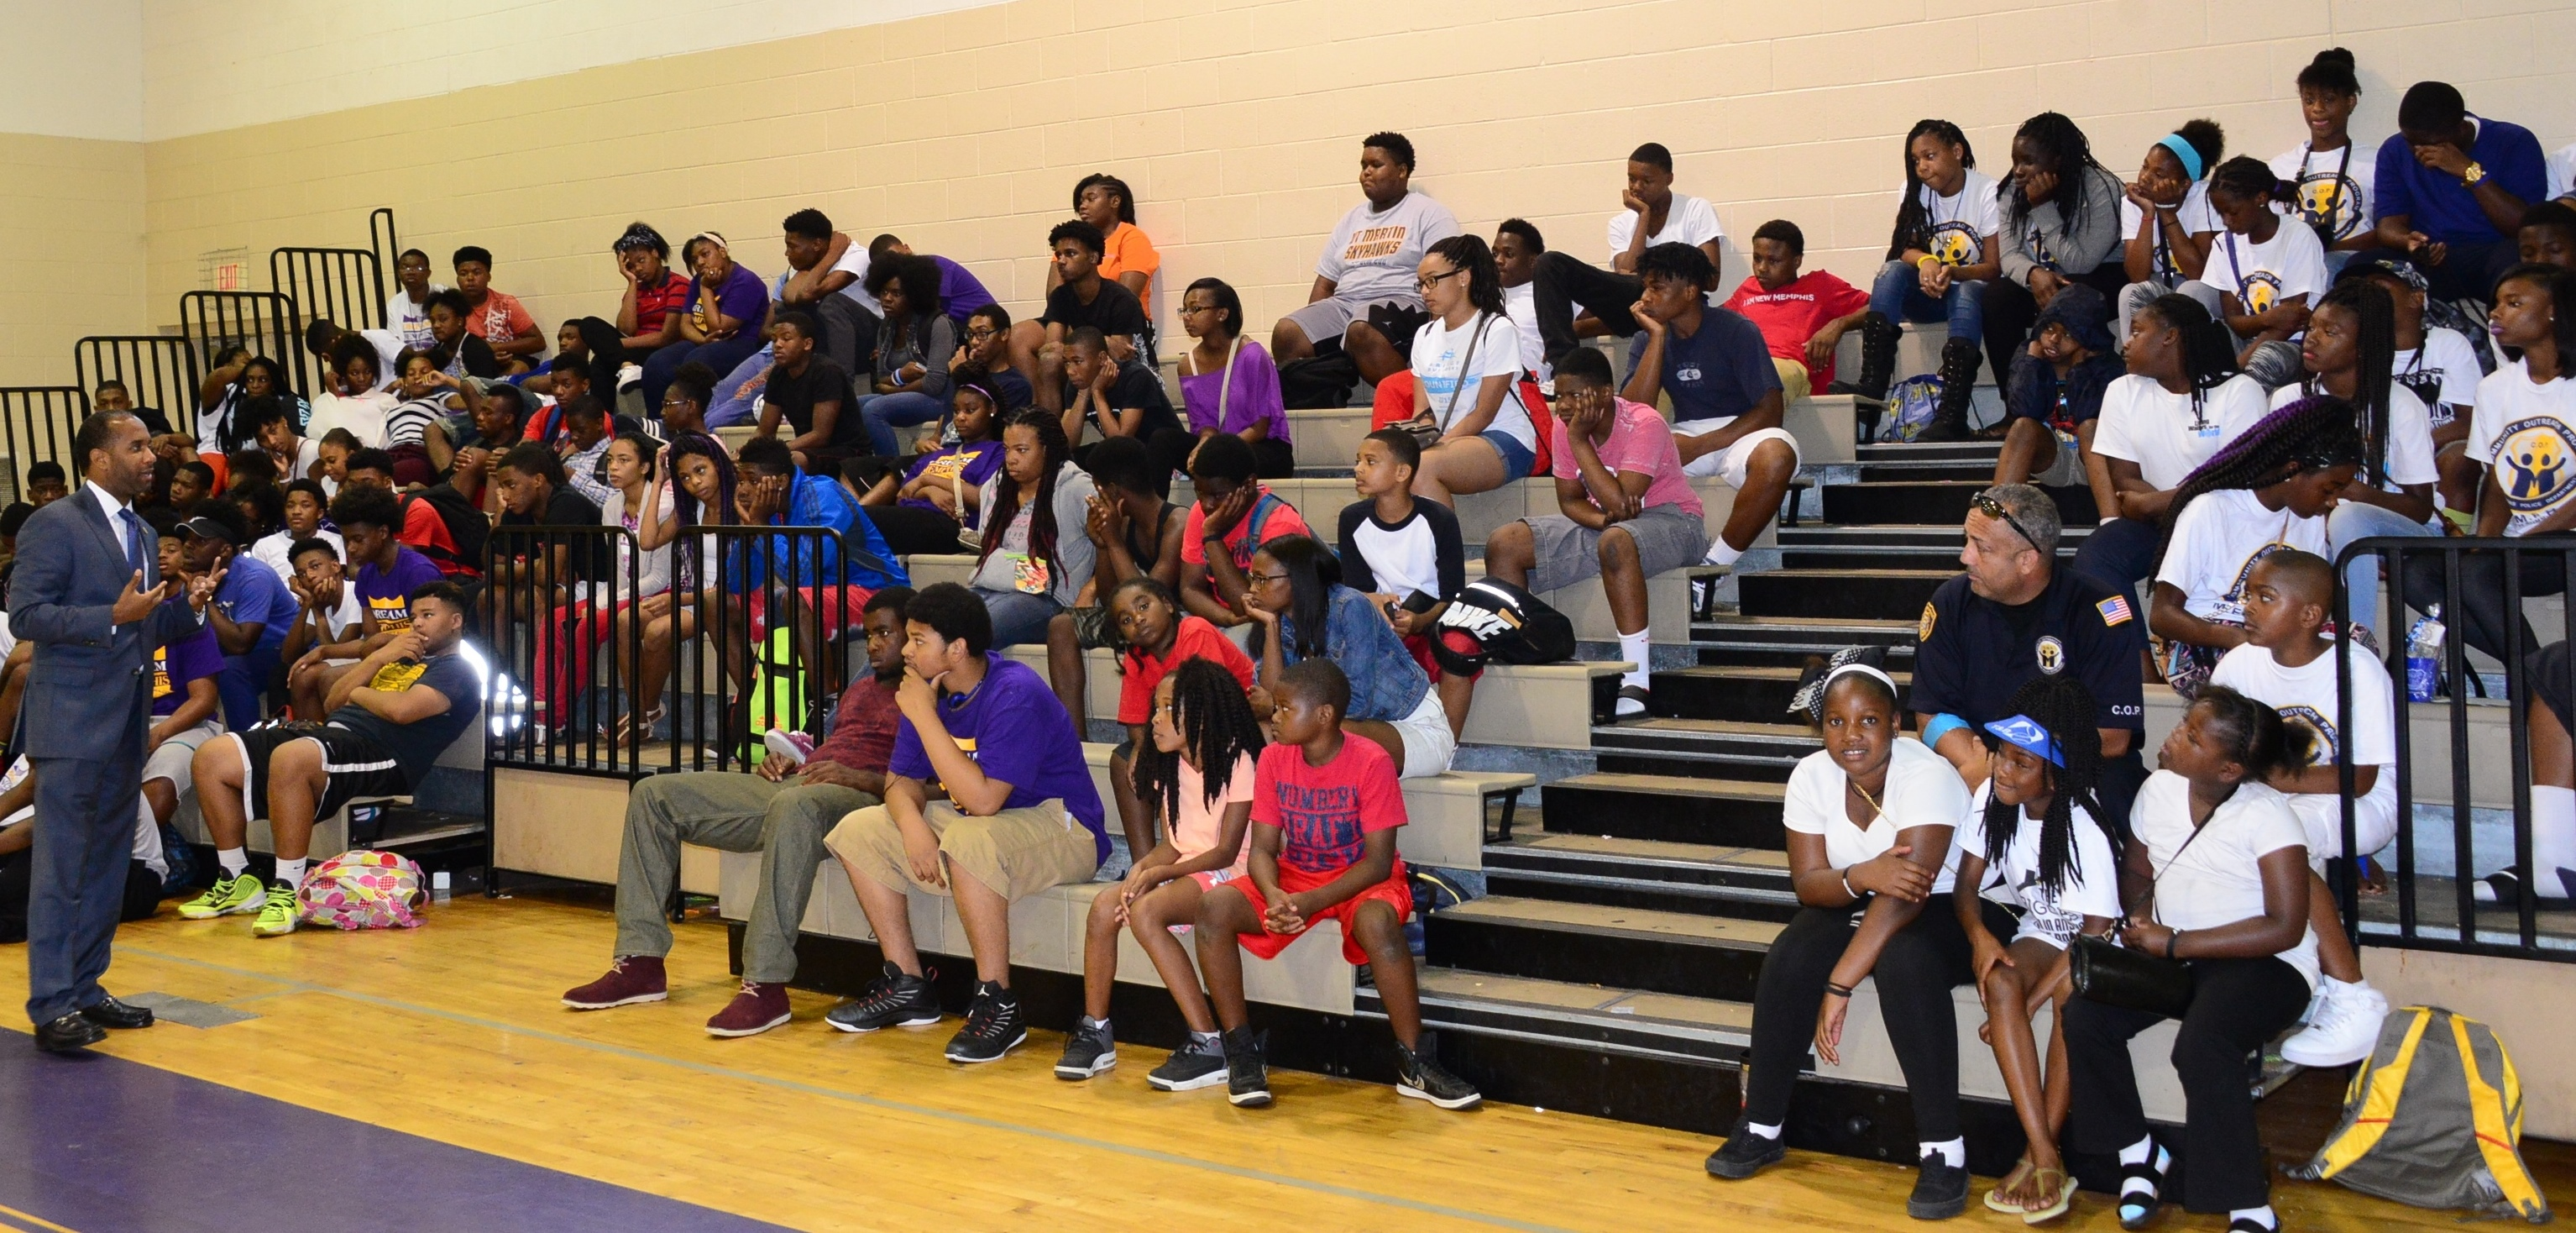 U.S. Attorney Stanton talks to youth at the MPD's C.O.P. Summer Camp.